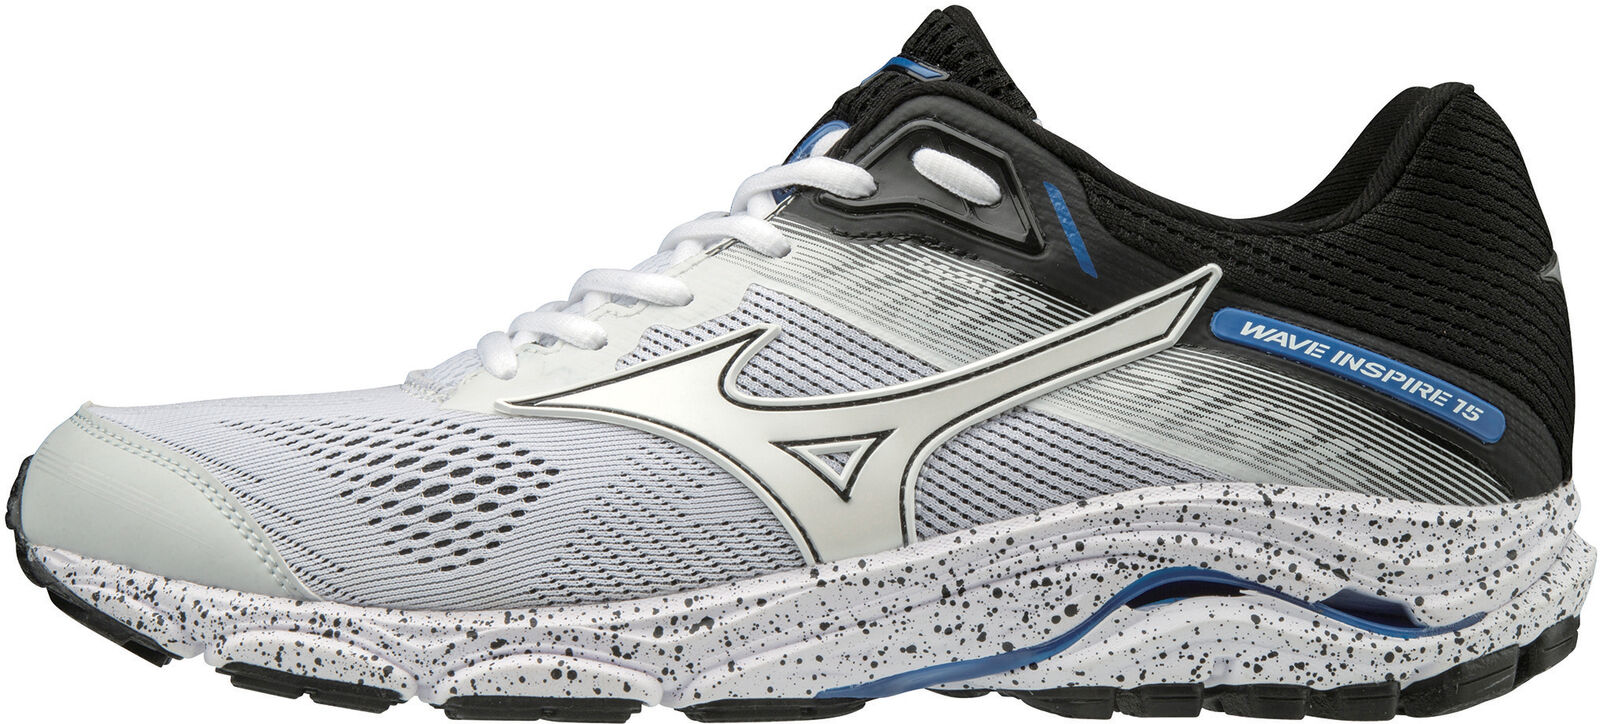 Mizuno Wave Inspire 15 Mens Running shoes -  White  discount promotions